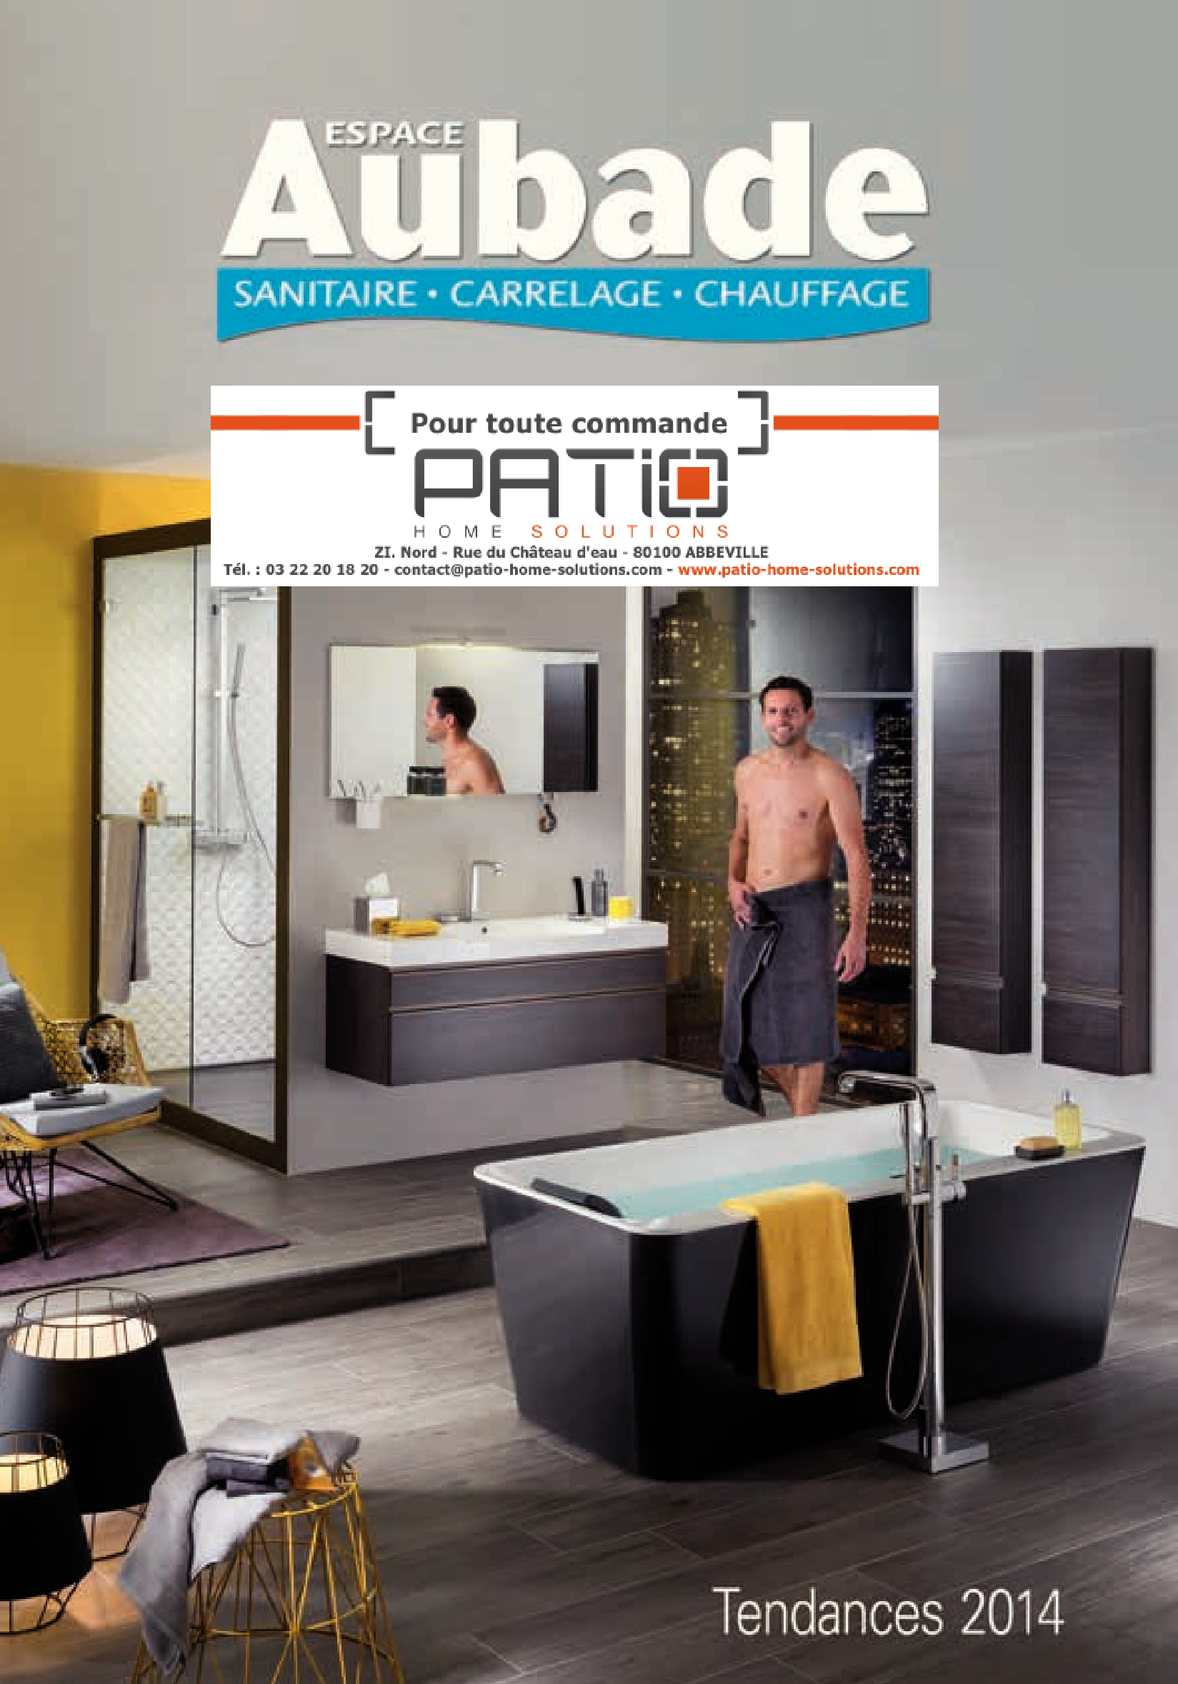 Calam o catalogue aubade patio 2014 - Delpha salle de bain ...